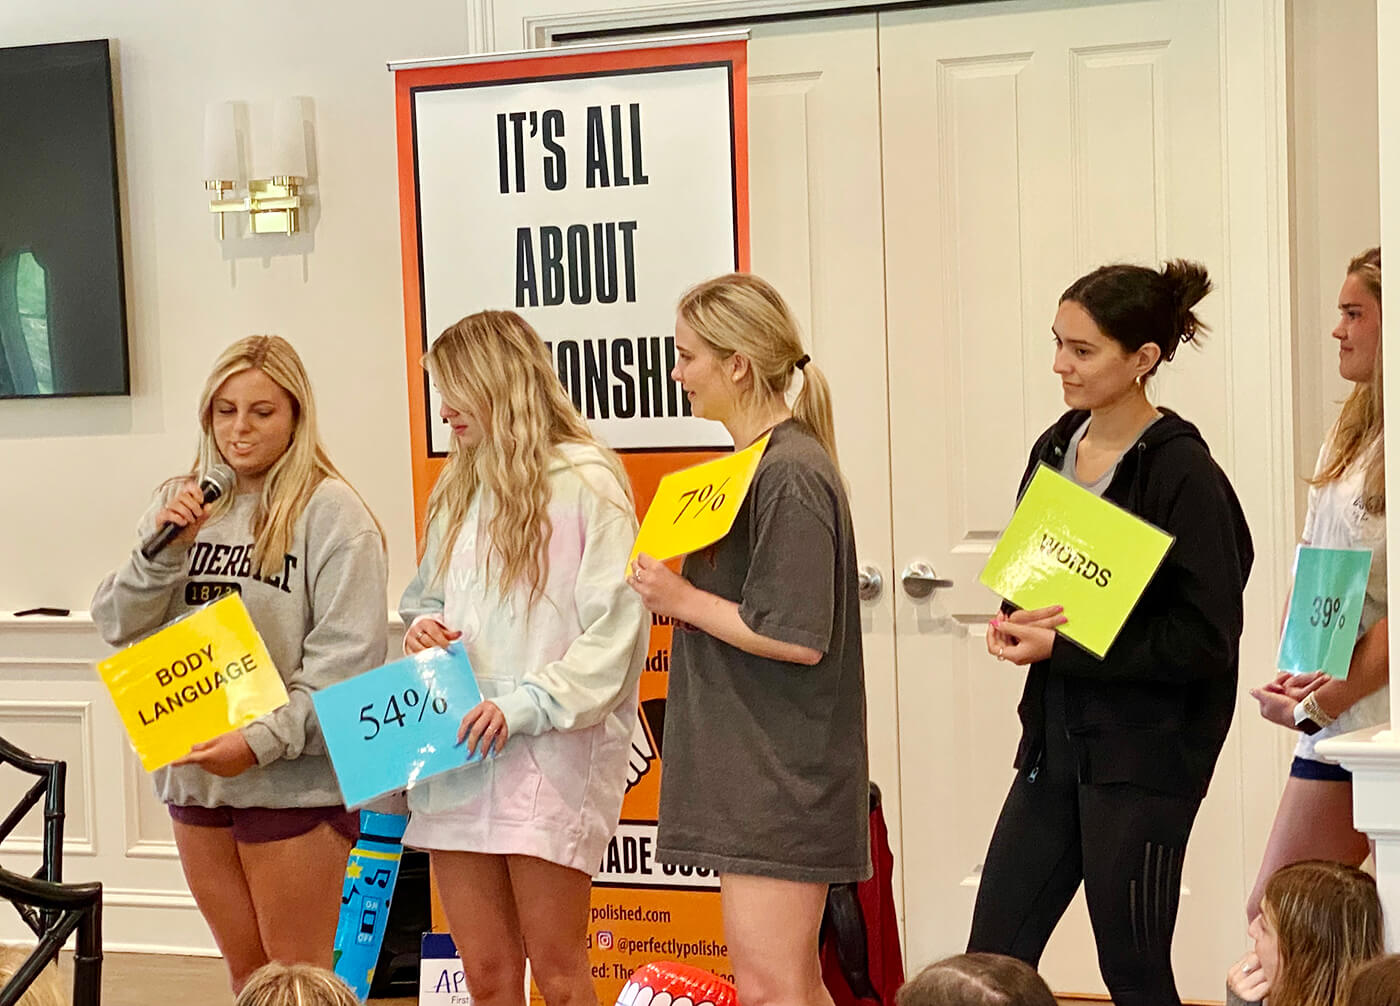 Perfectly Polished teaches a class about networking for a collegiate sorority.